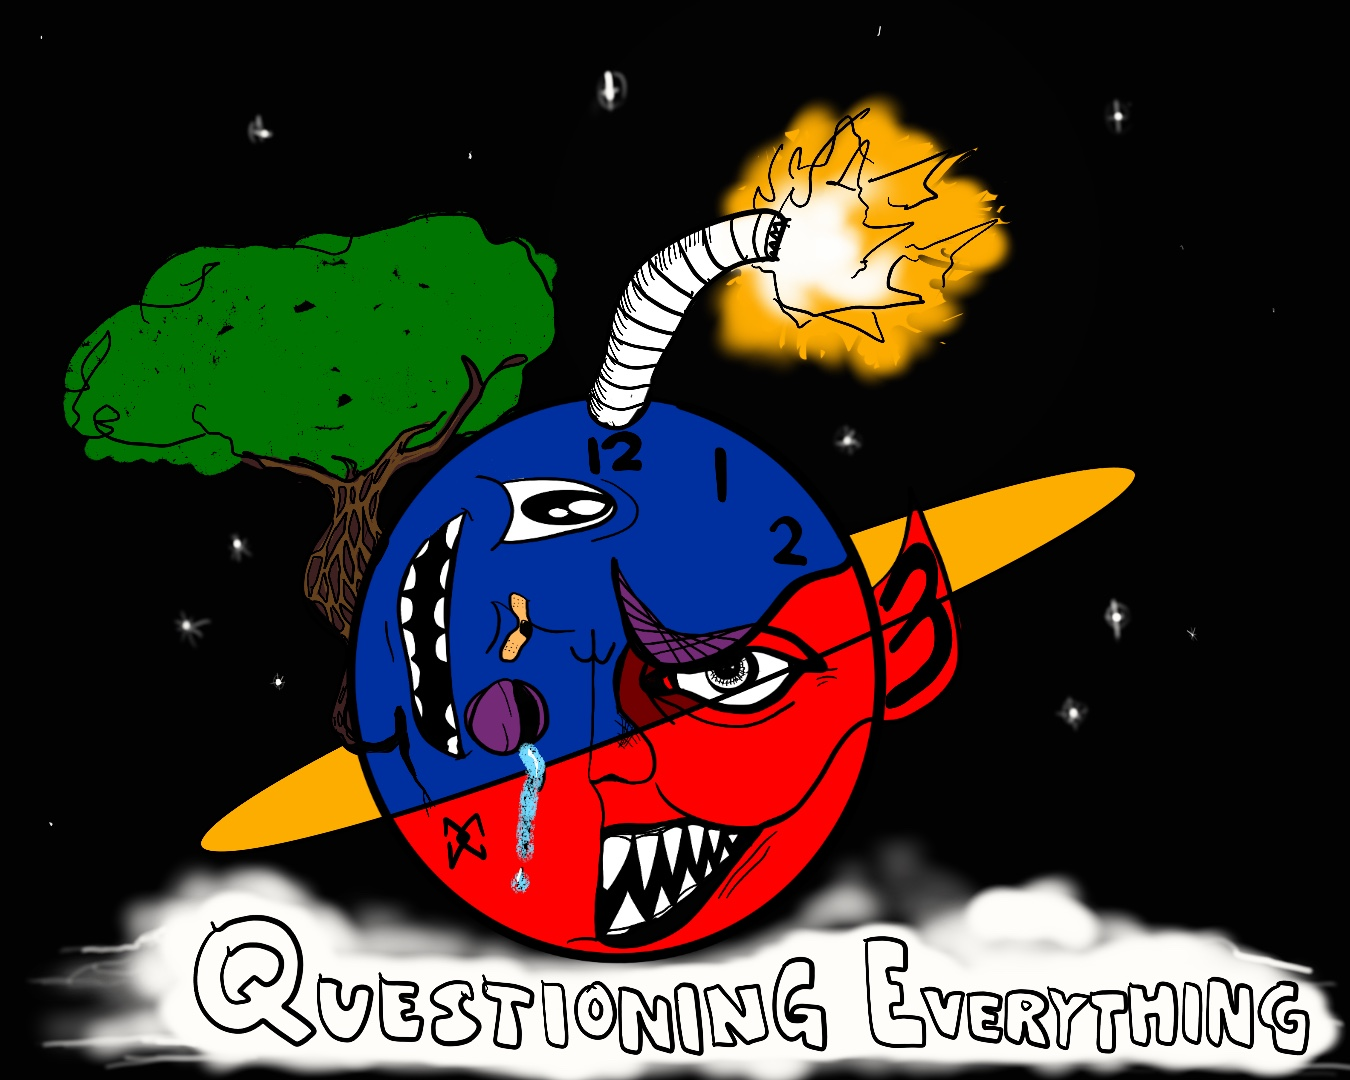 Questioning Everything